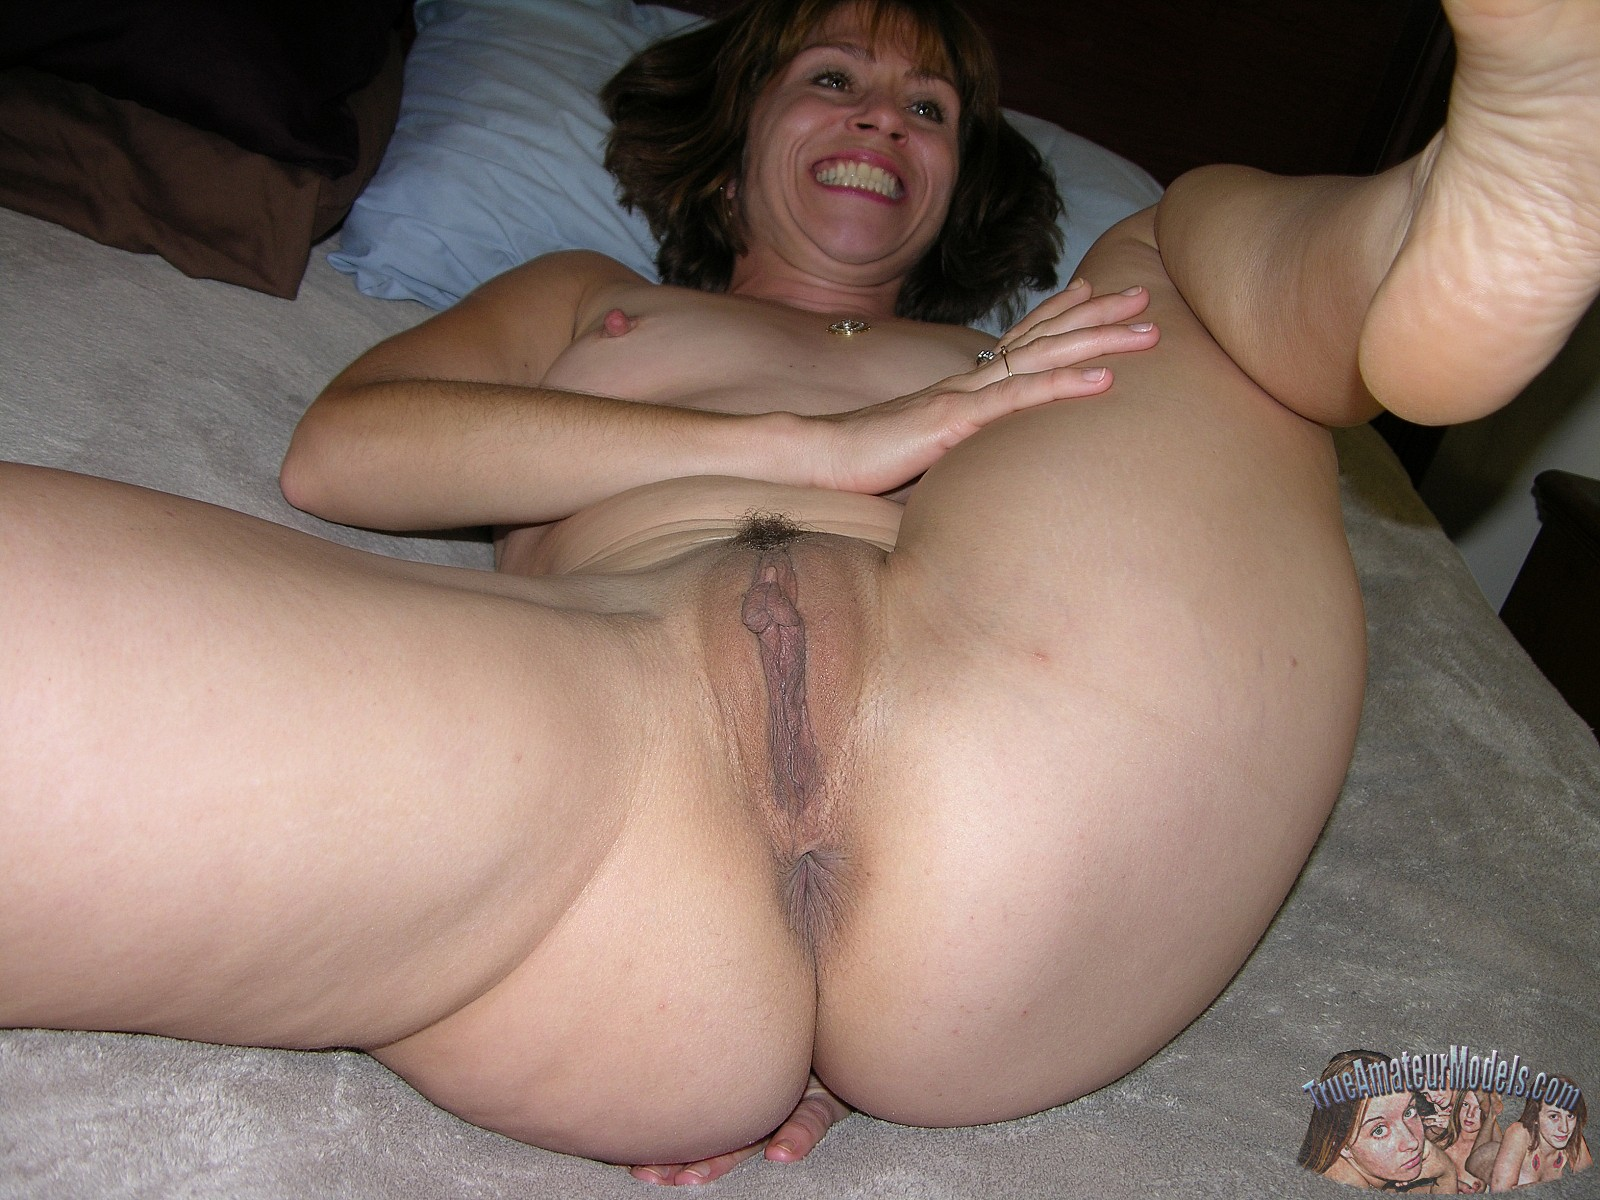 Hairy mature amateur pictures videos